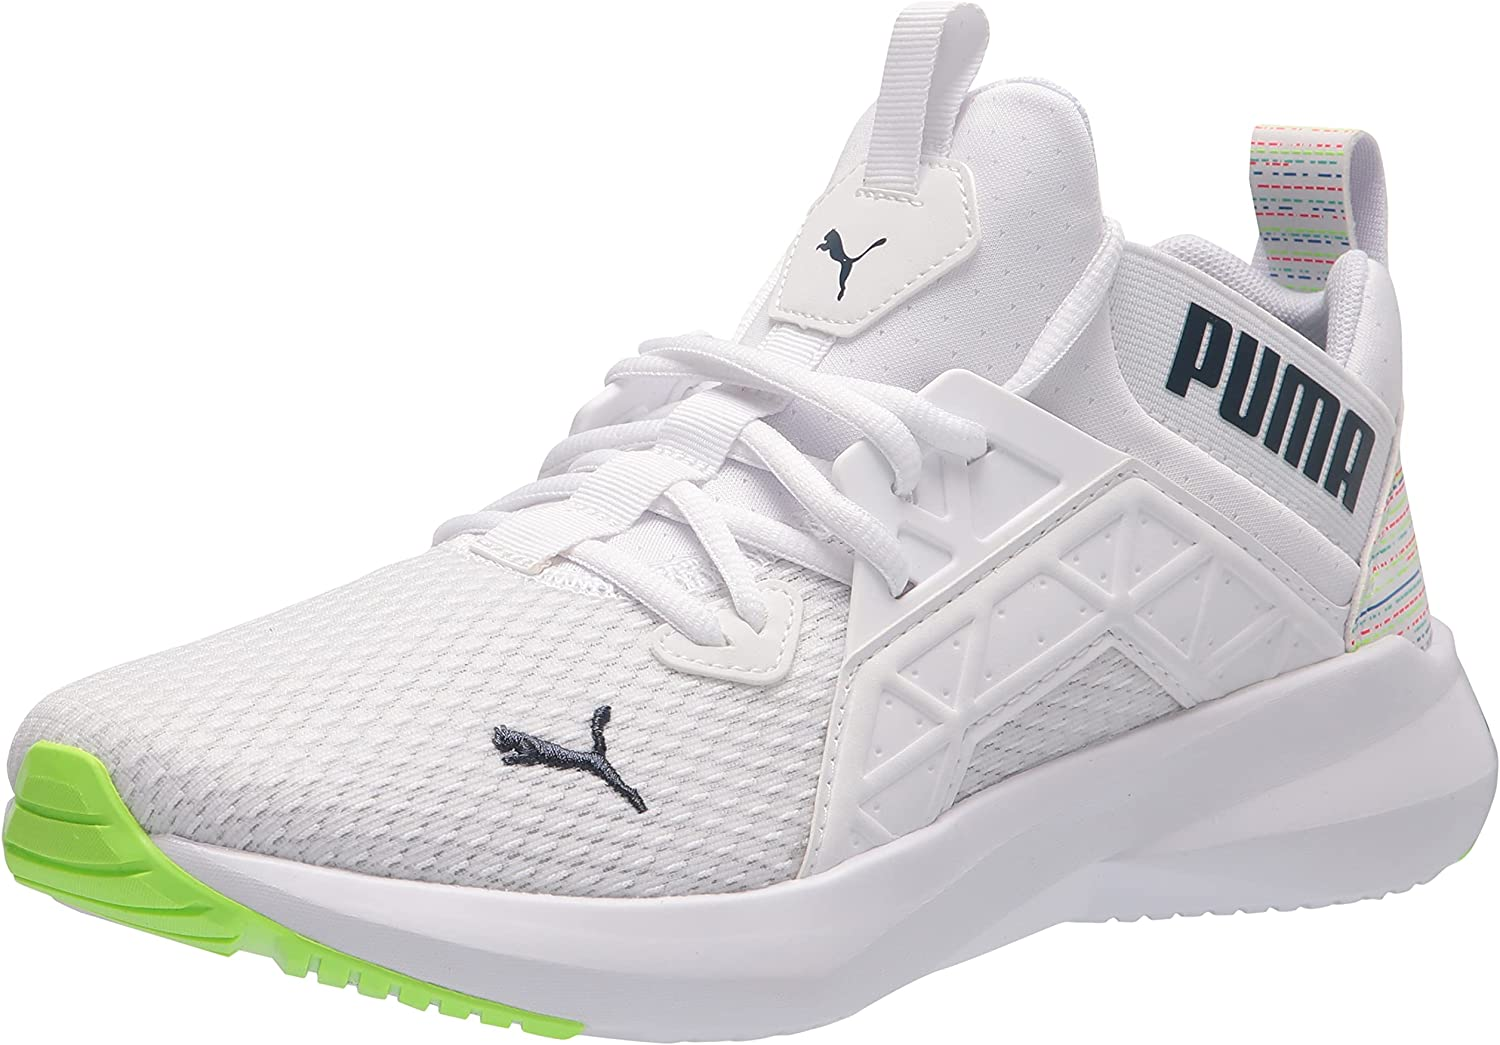 PUMA Men's Softride Enzo Nxt Shoe Max 79% OFF Running Sales of SALE items from new works